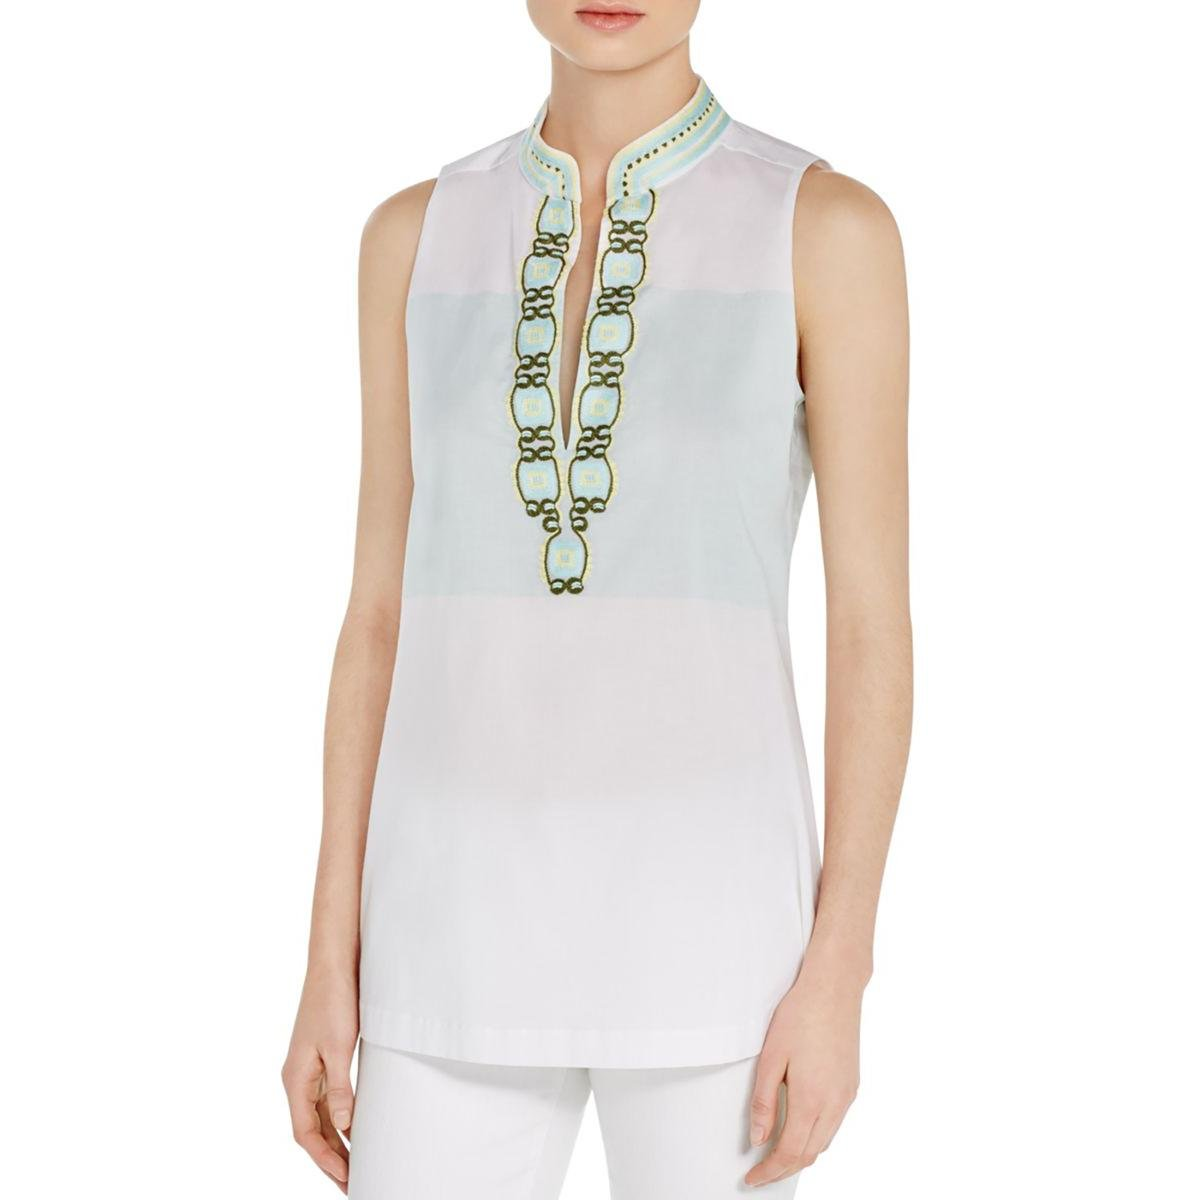 Tory Burch Womens Embroidered Sleeveless Tunic Top White 4